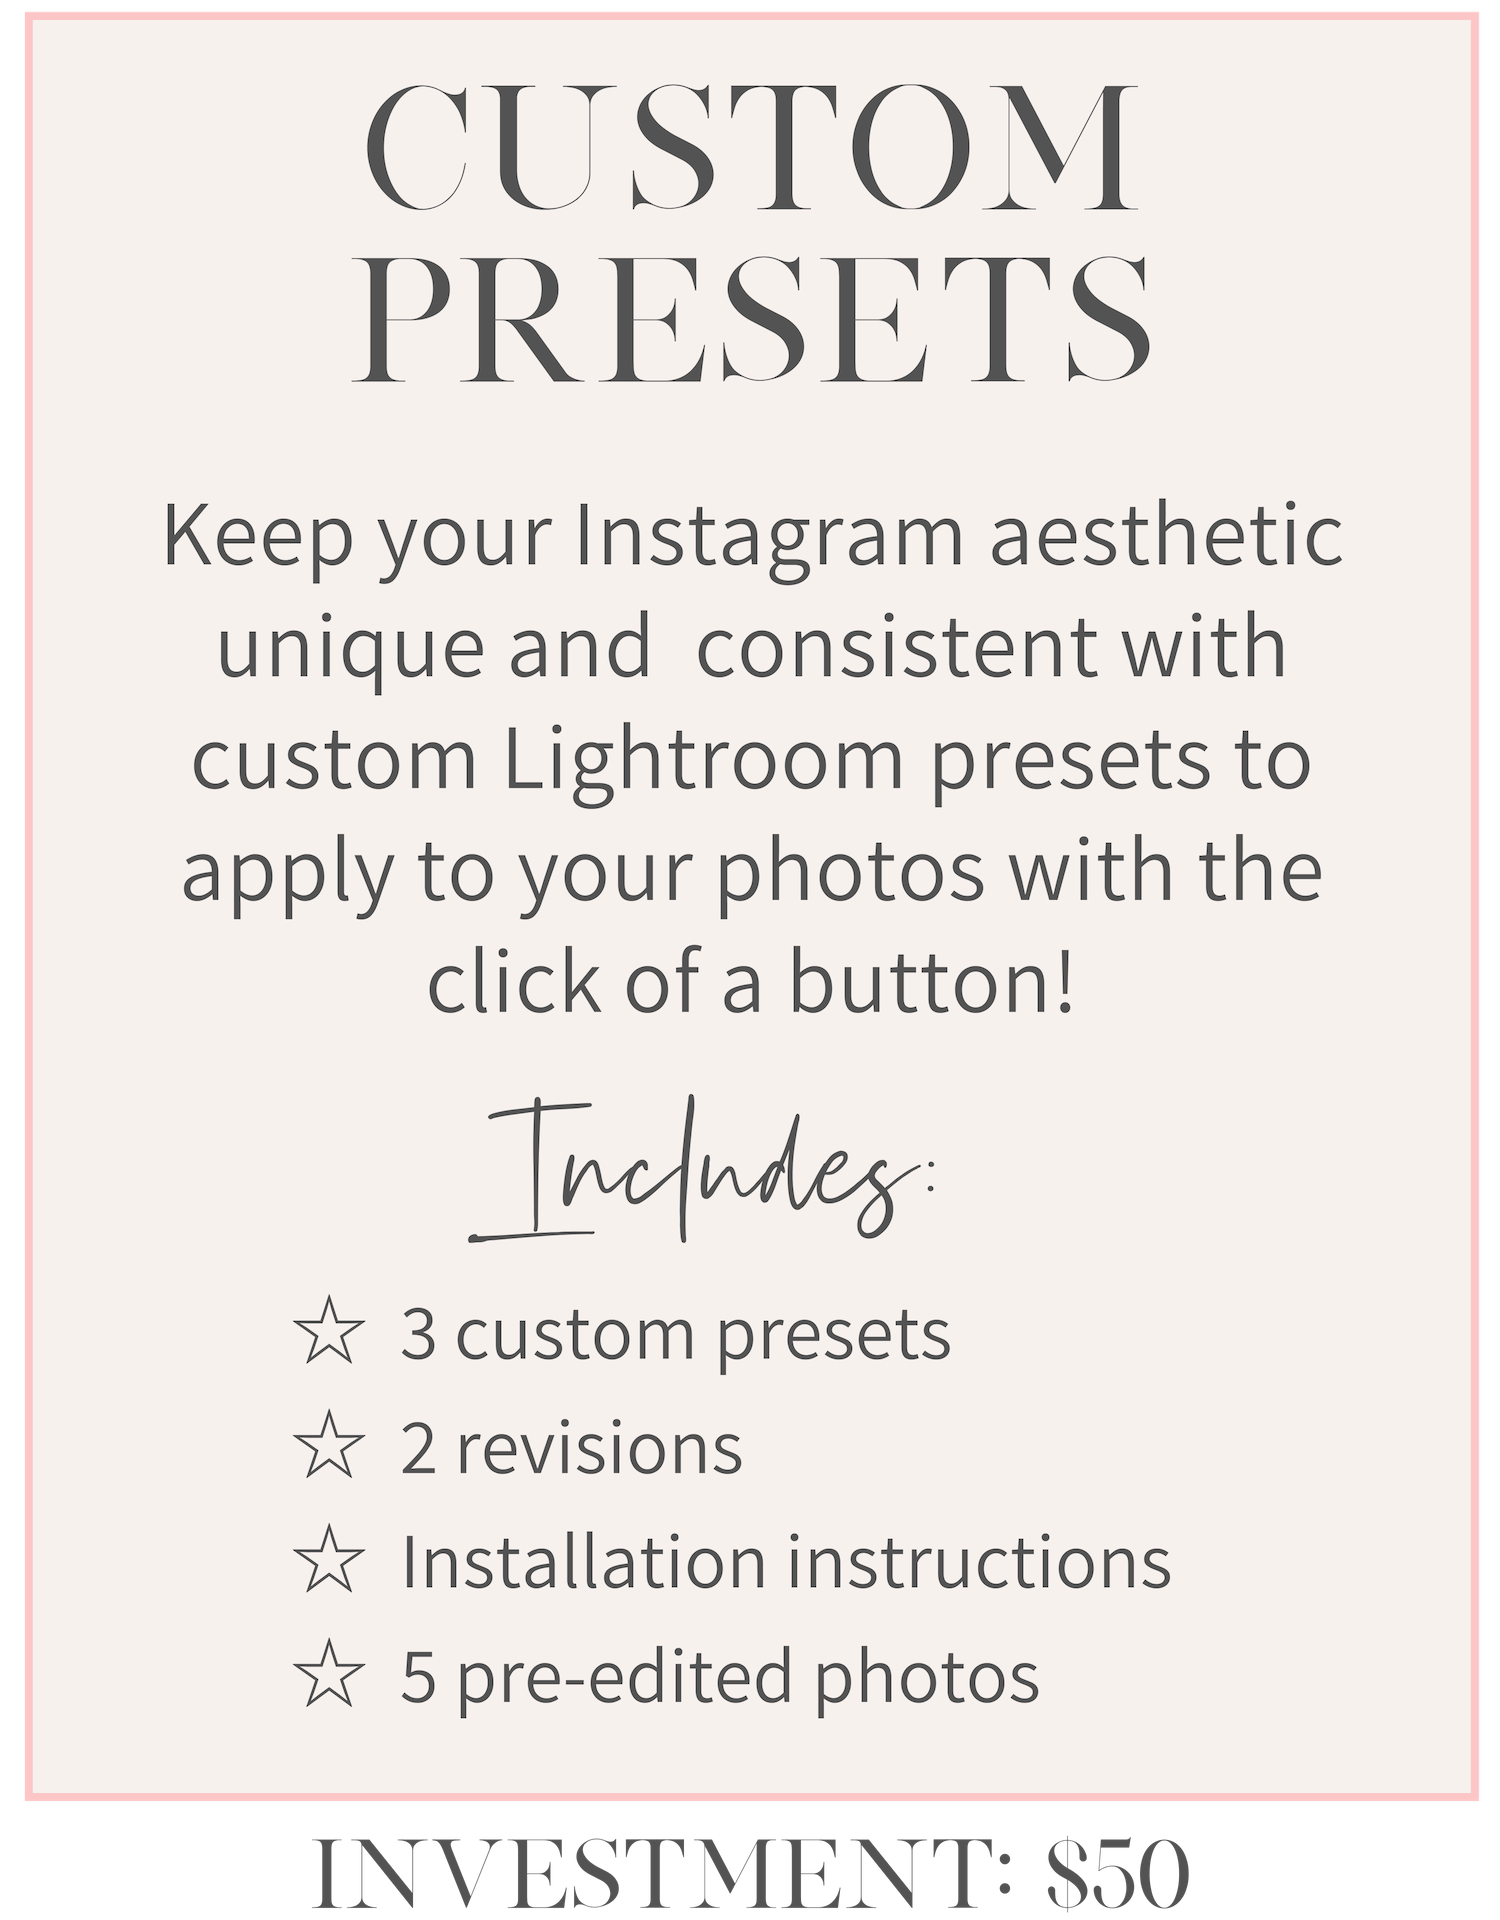 girlcrush collective lightroom preset service